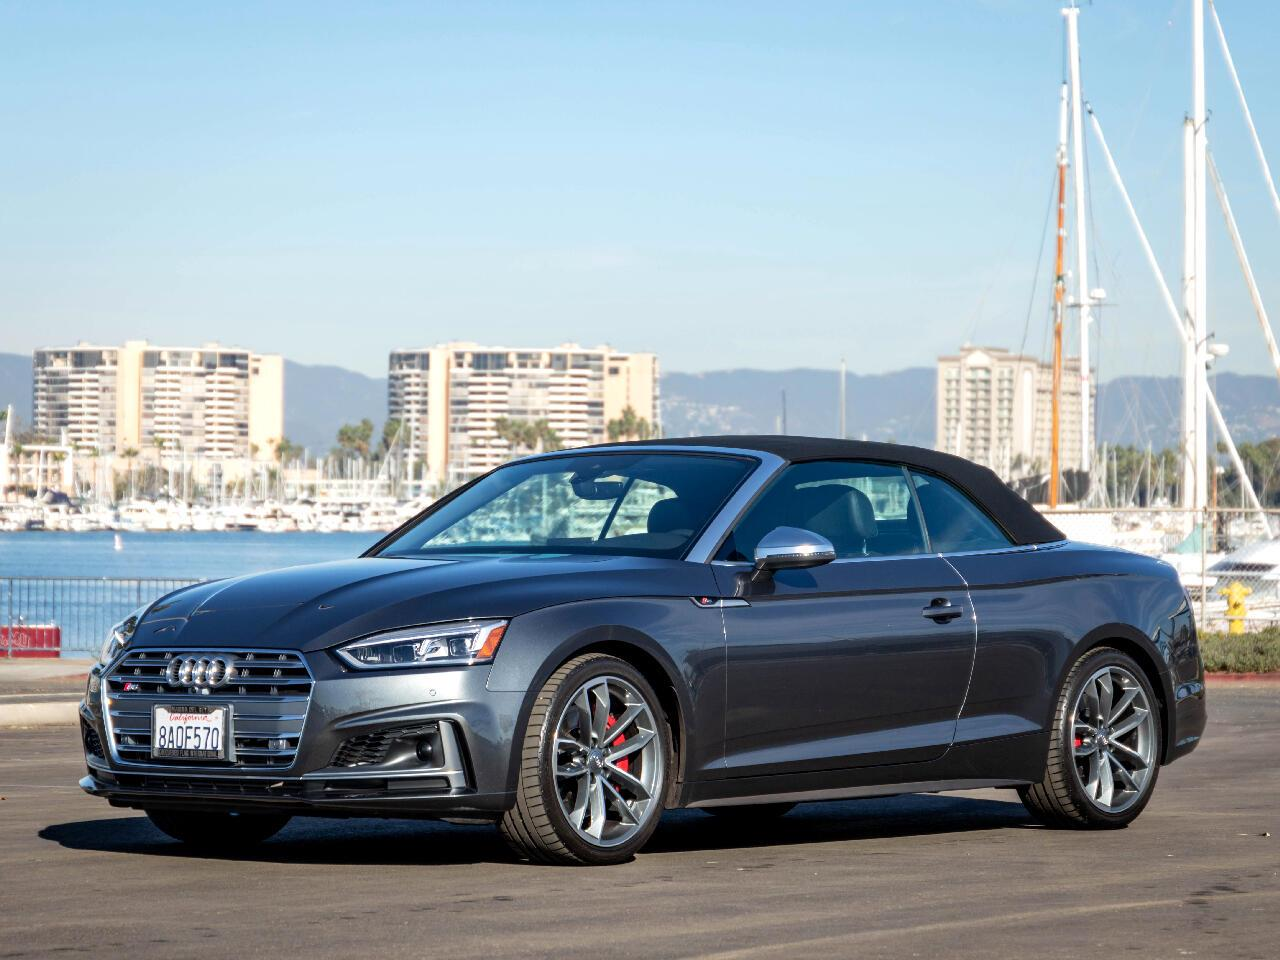 2018 Audi S5 (CC-1422726) for sale in Marina Del Rey, California